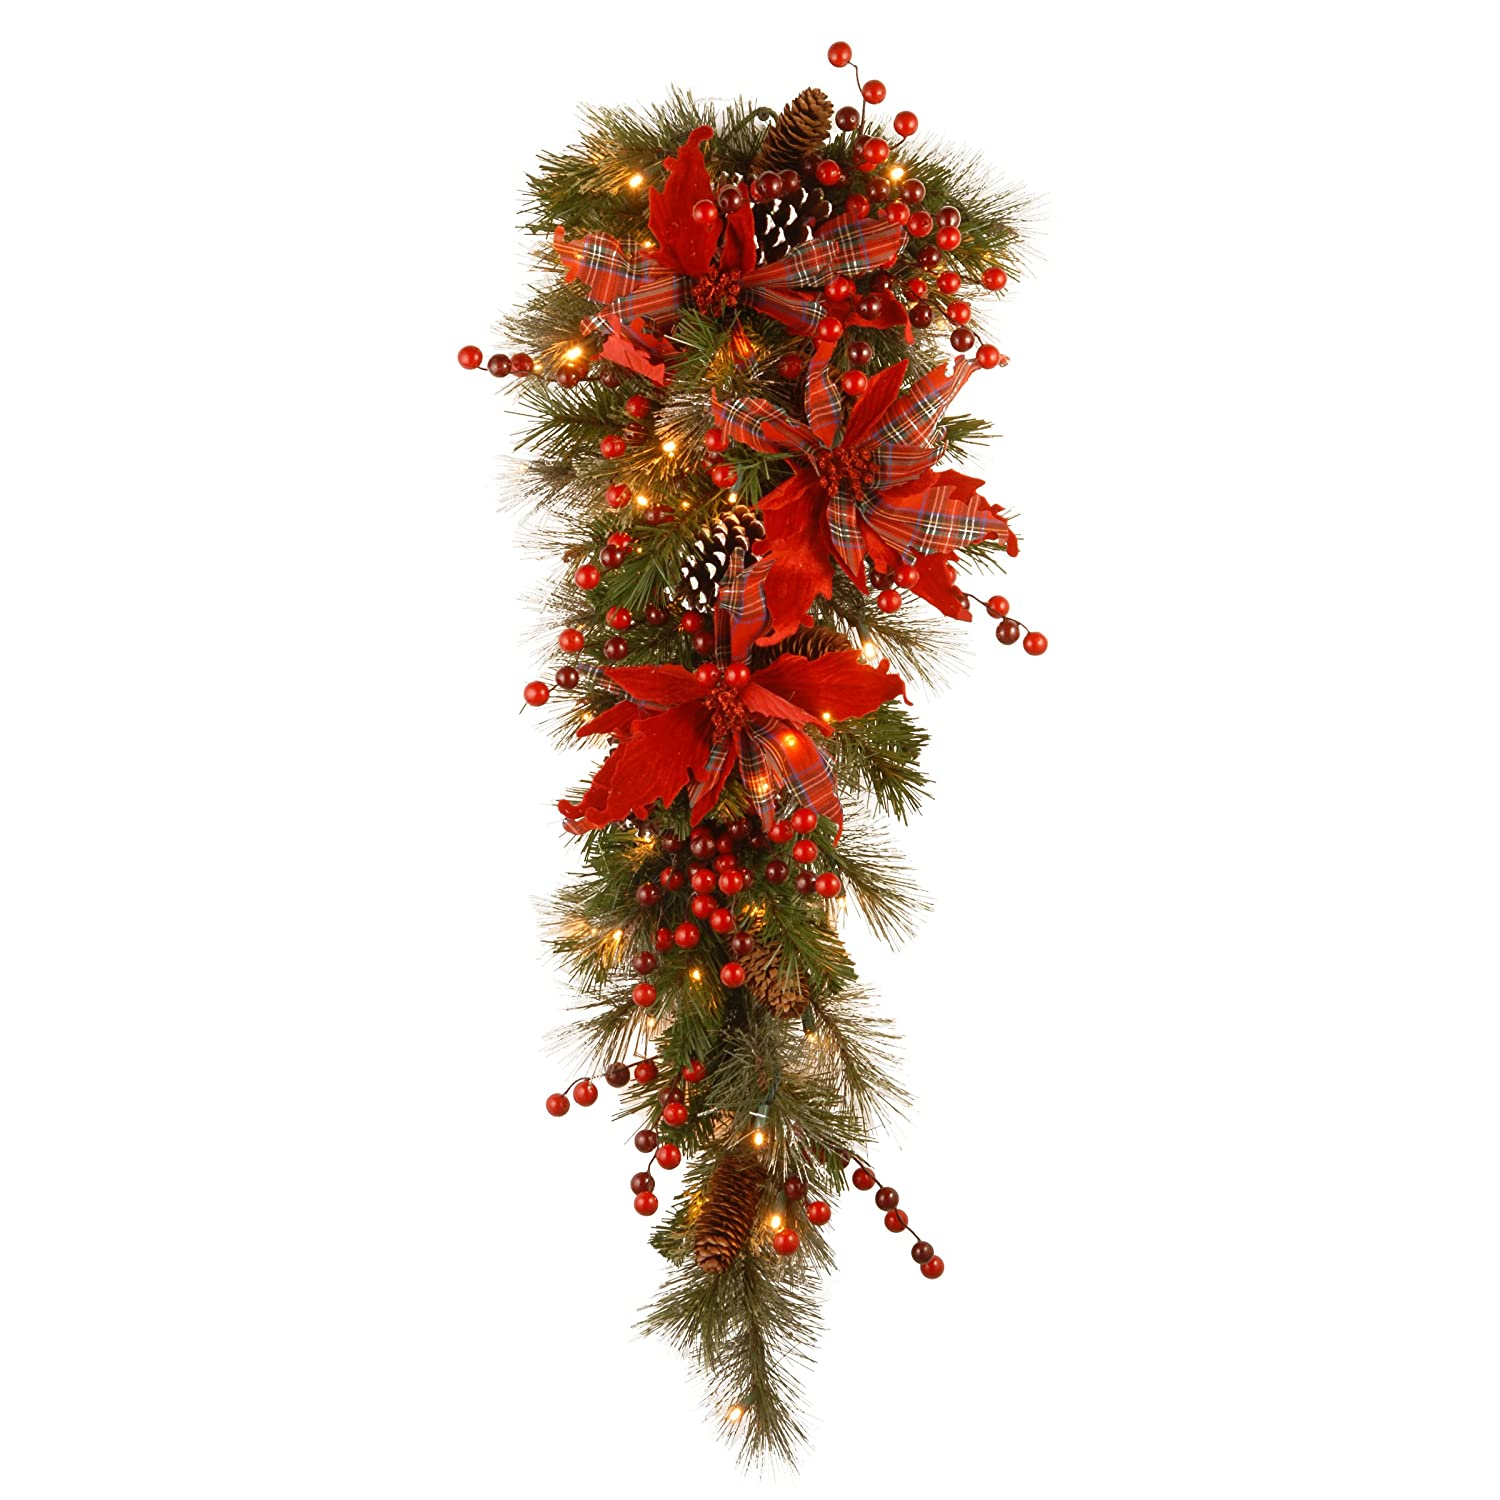 National Tree 9 Foot by 12 Inch Decorative Collection Tartan Plaid Garland with Red Berries, Cloth Poinsettia, Cones and 50 Battery Operated Warm White LED Lights (DC13-147-9BB-1)